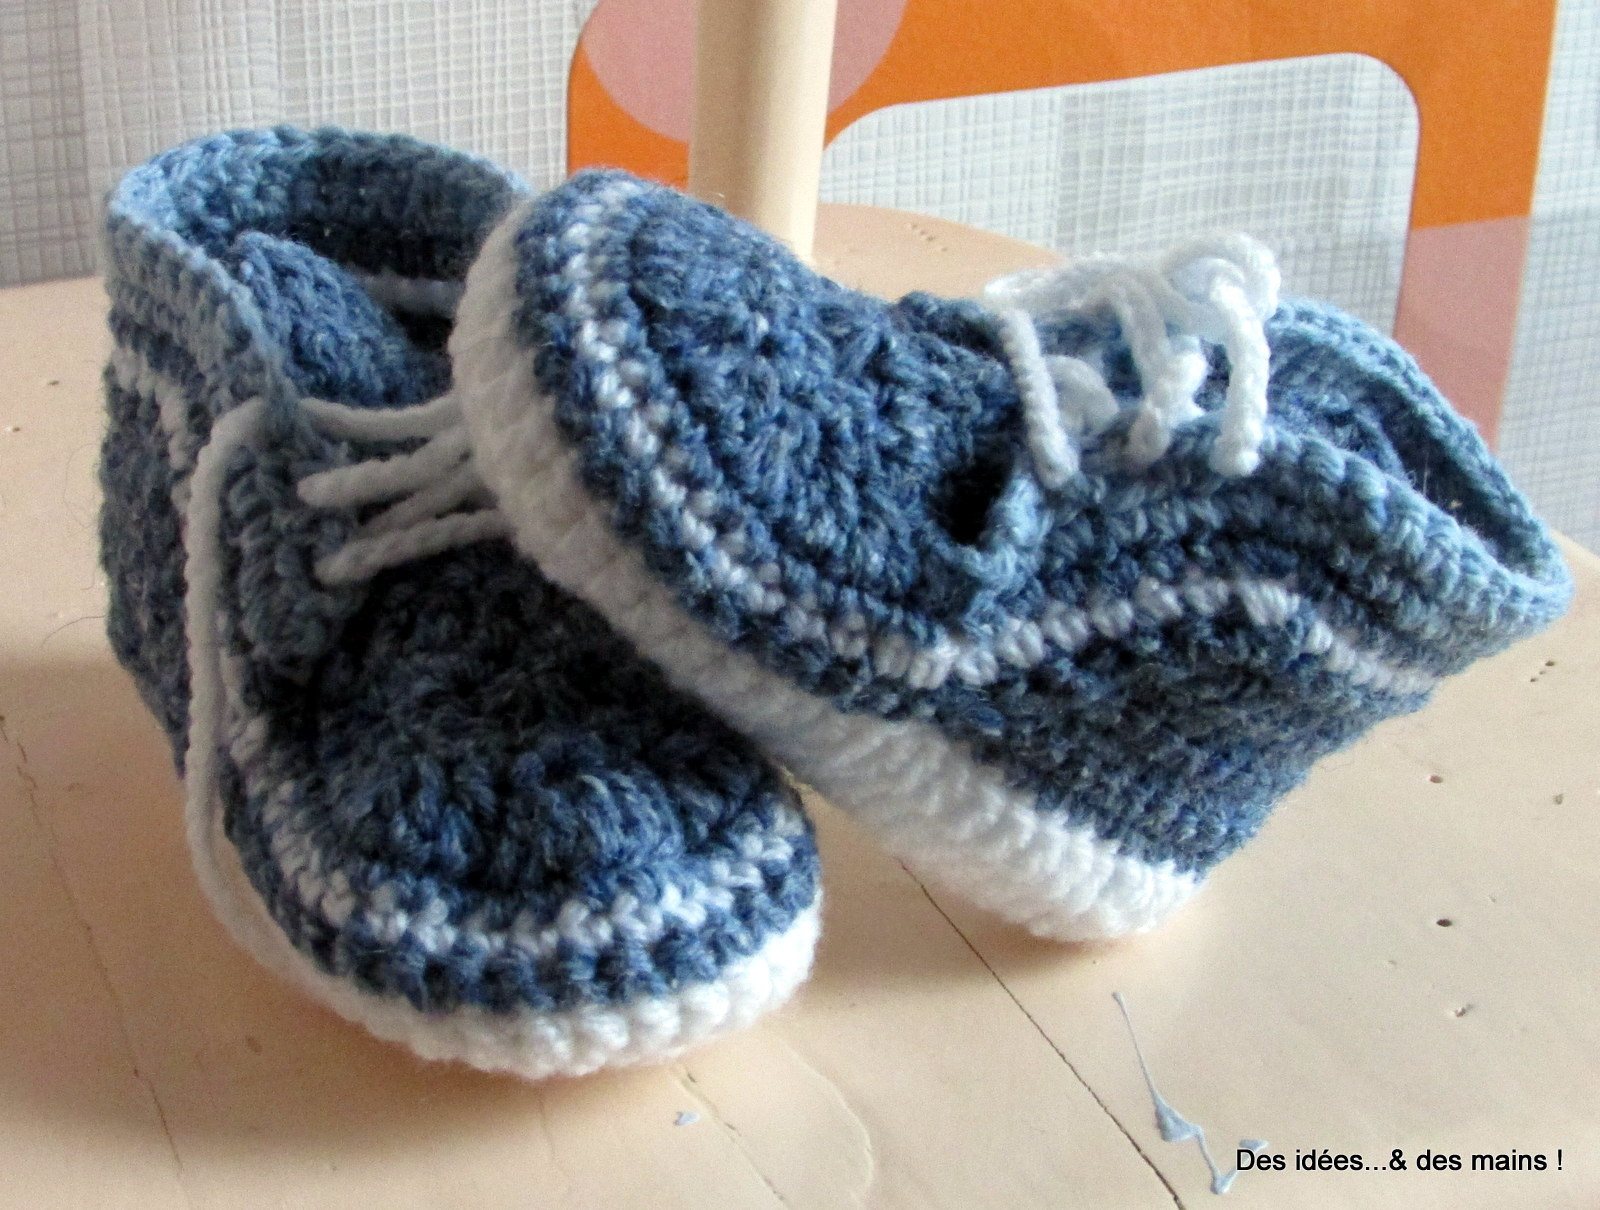 des id es des mains baskets au crochet pour b b. Black Bedroom Furniture Sets. Home Design Ideas